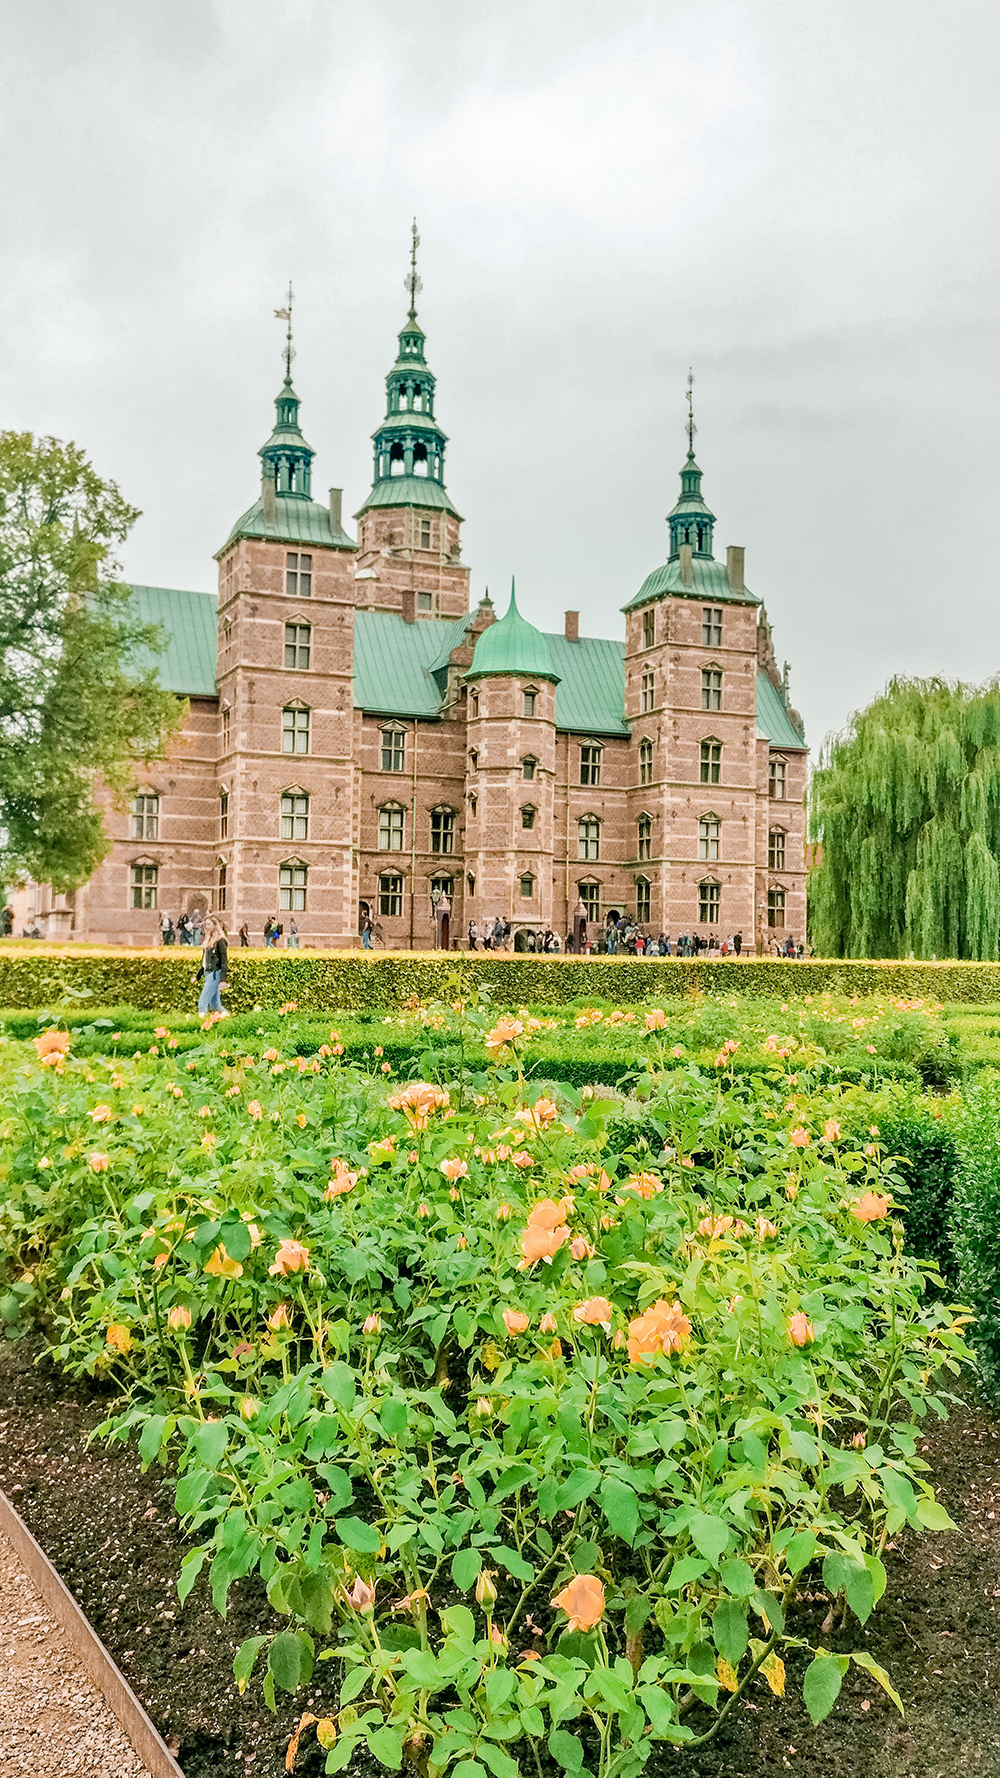 The King's Garden (Kongens Have) and Rosenborg castle - Copenhagen 3-day travel itinerary | Aliz's Wonderland